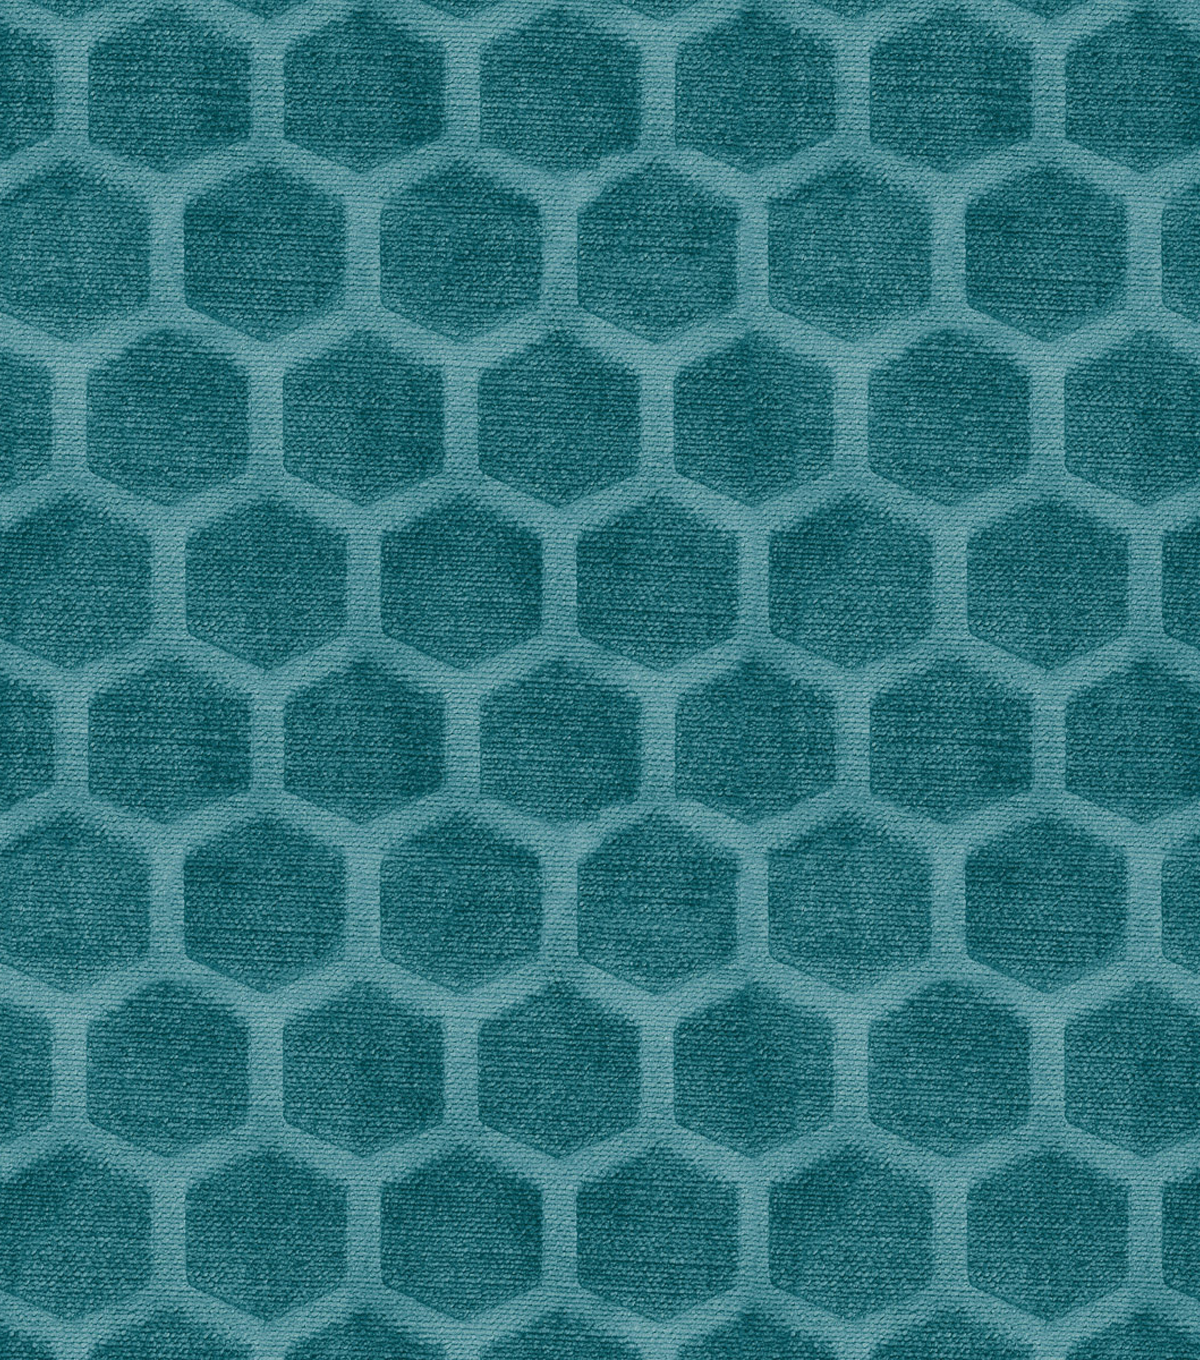 Waverly Symmetry Upholstery Fabric 56\u0022-Teal